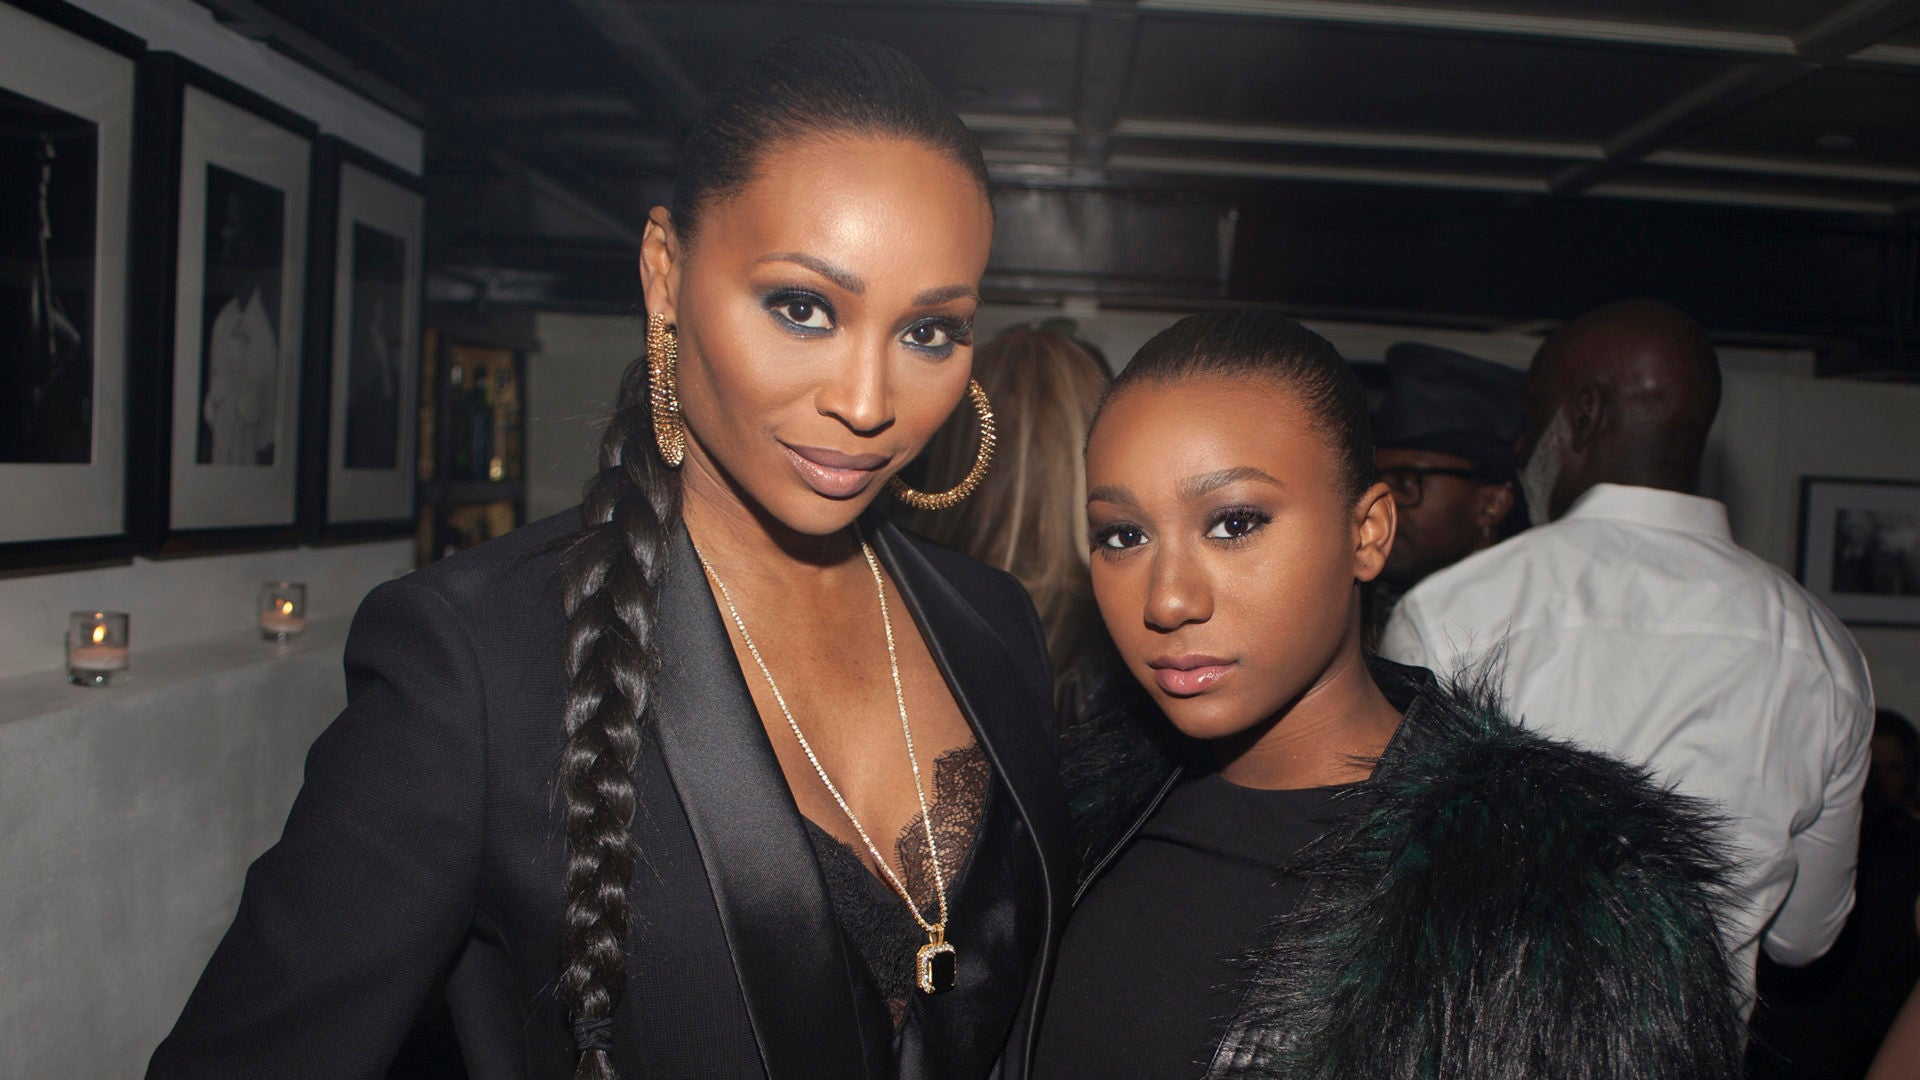 cynthia-bailey-hangs-out-with-noelle-robinson-and-calls-her-mini-me